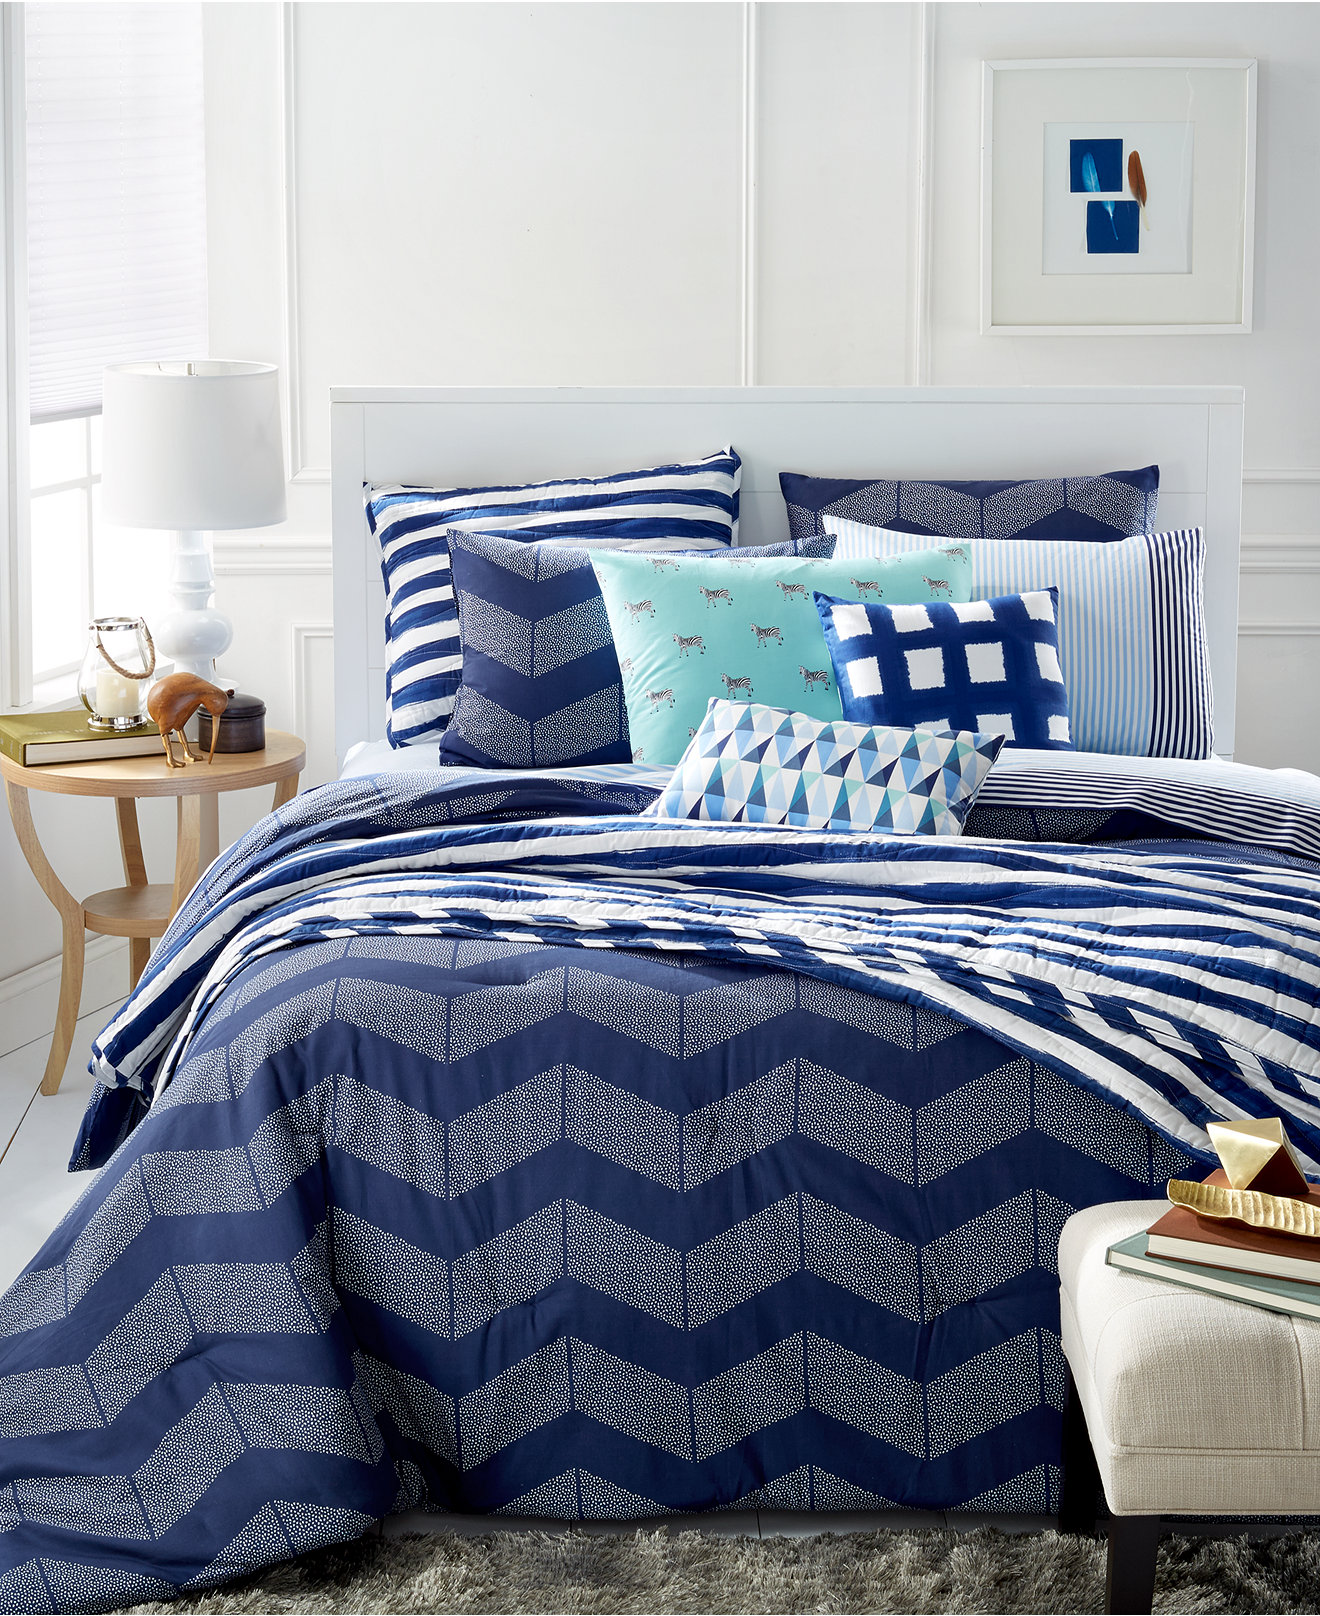 Navy blue and tan bedding - Teal Comforter Sets Navy Blue Comforter Coral Comforter Set